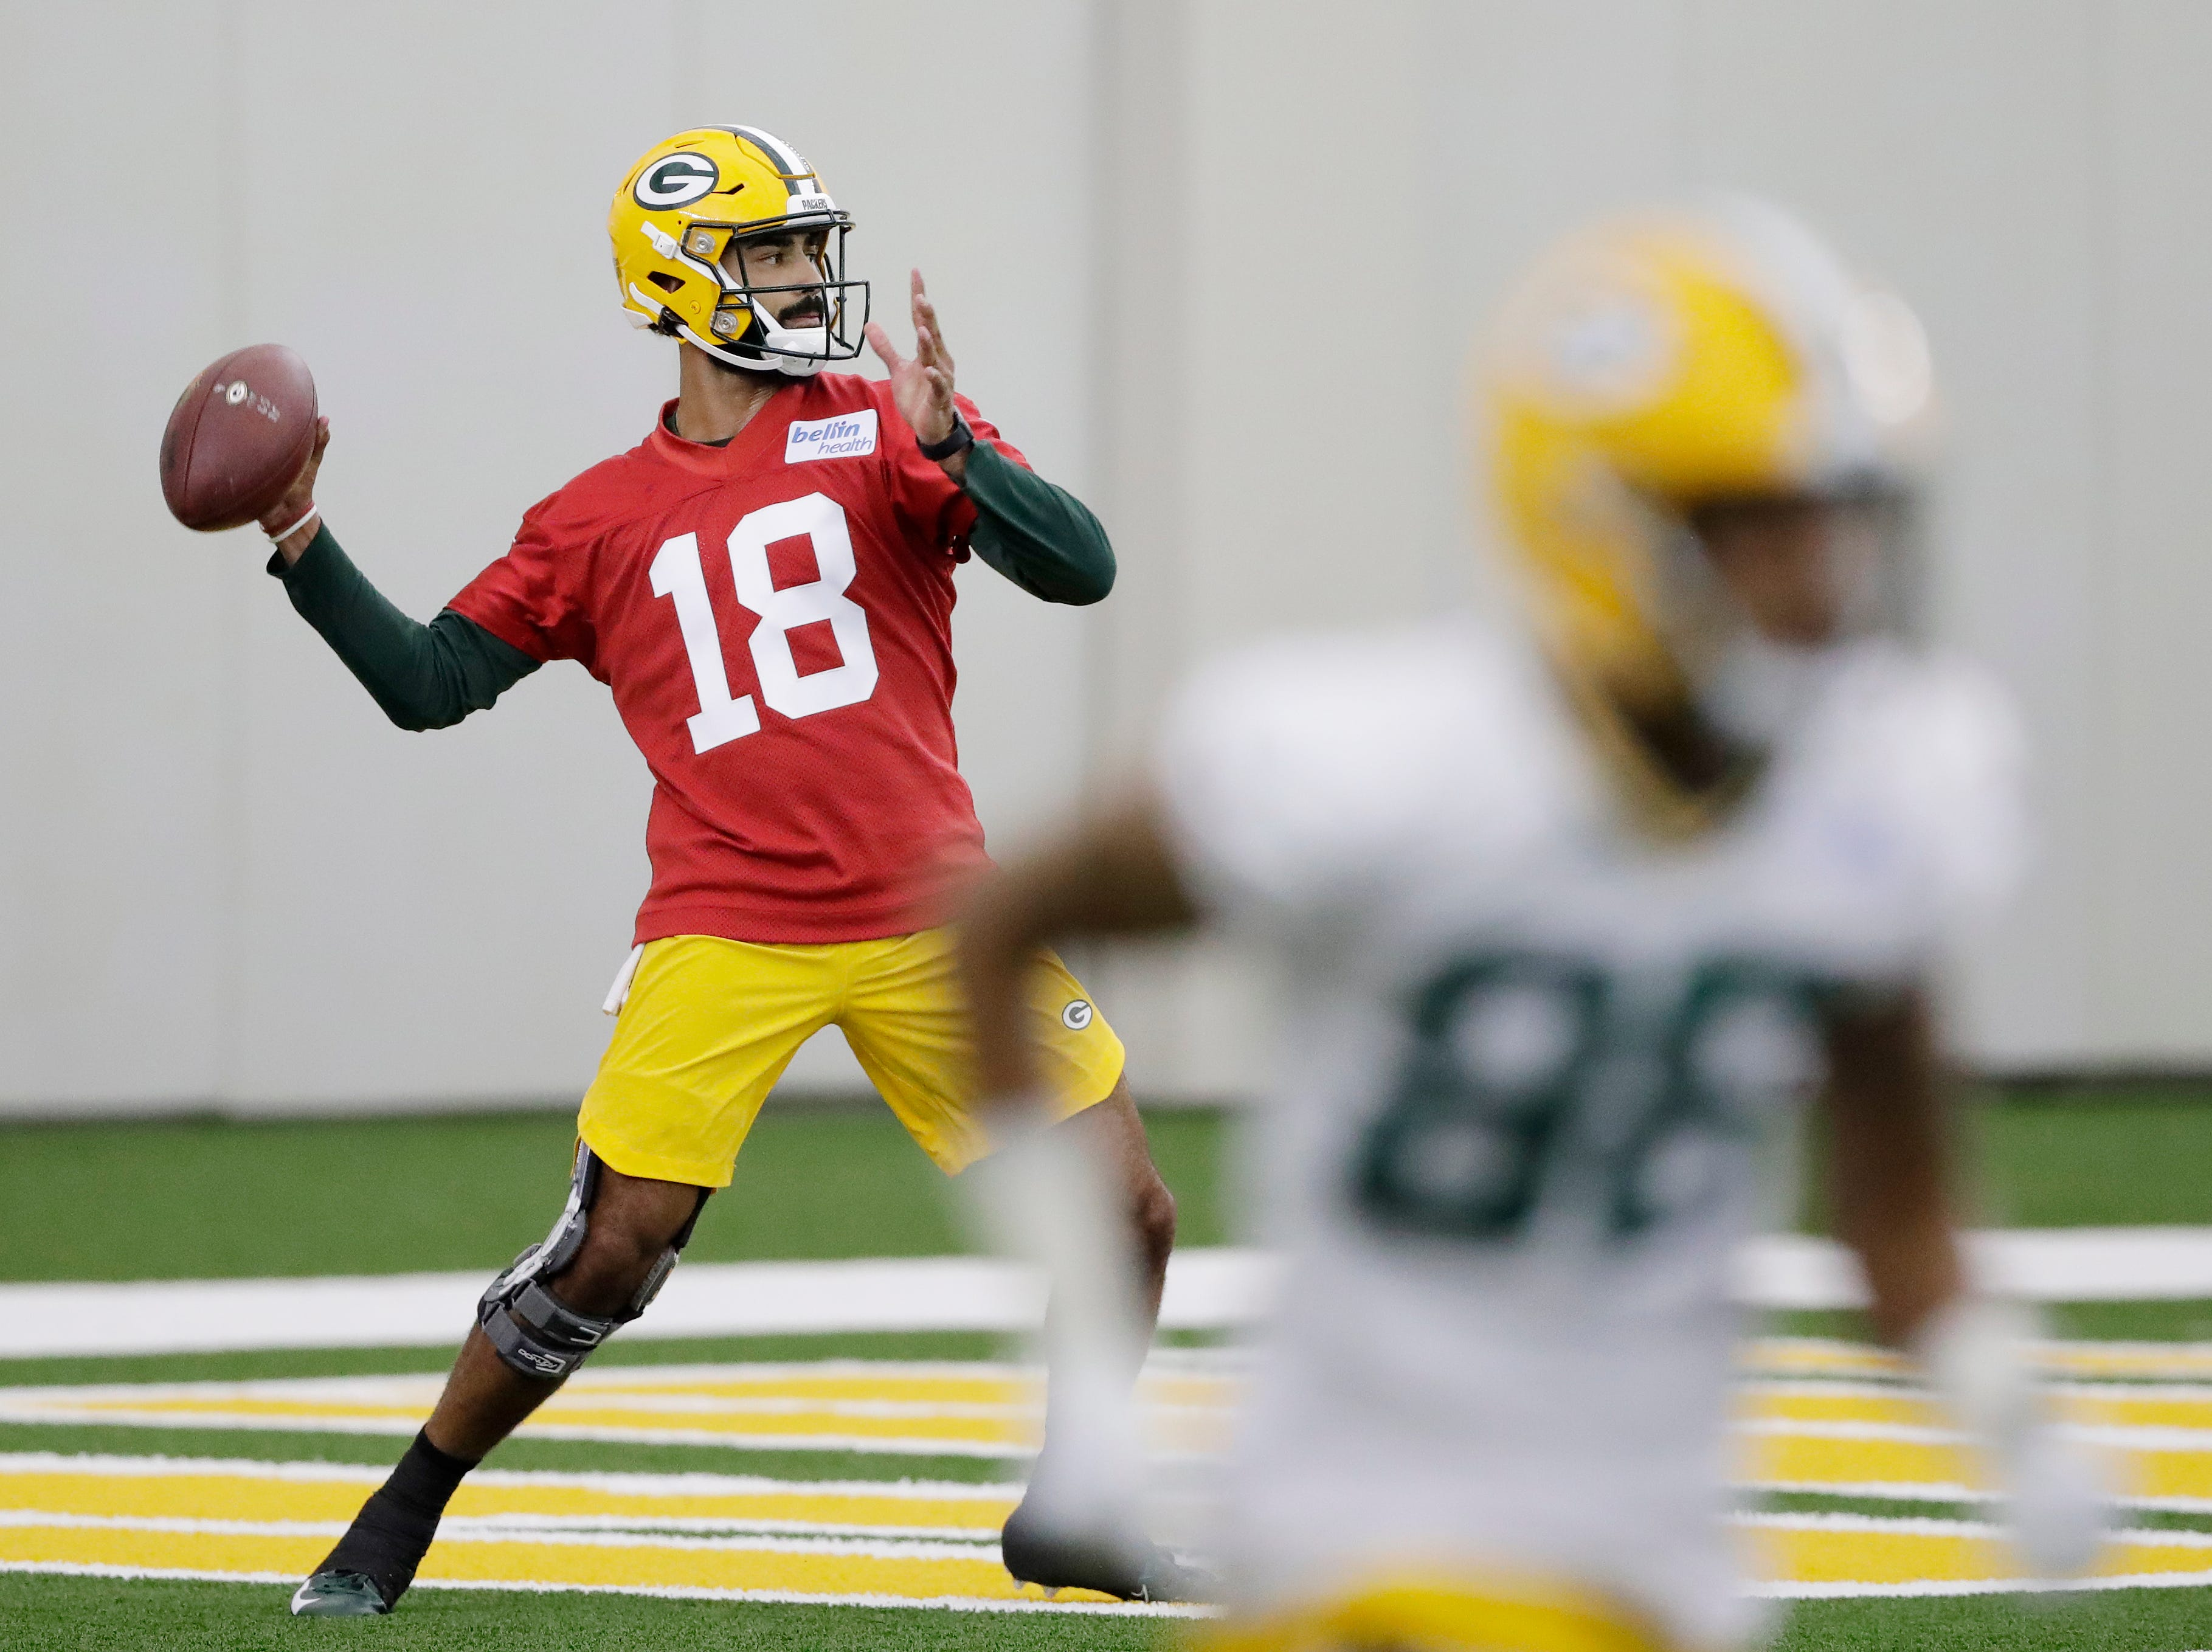 Green Bay Packers quarterback Manny Wilkins (18) during practice at rookie minicamp at the Don Hutson Center on Friday, May 3, 2019 in Ashwaubenon, Wis.Adam Wesley/USA TODAY NETWORK-Wis